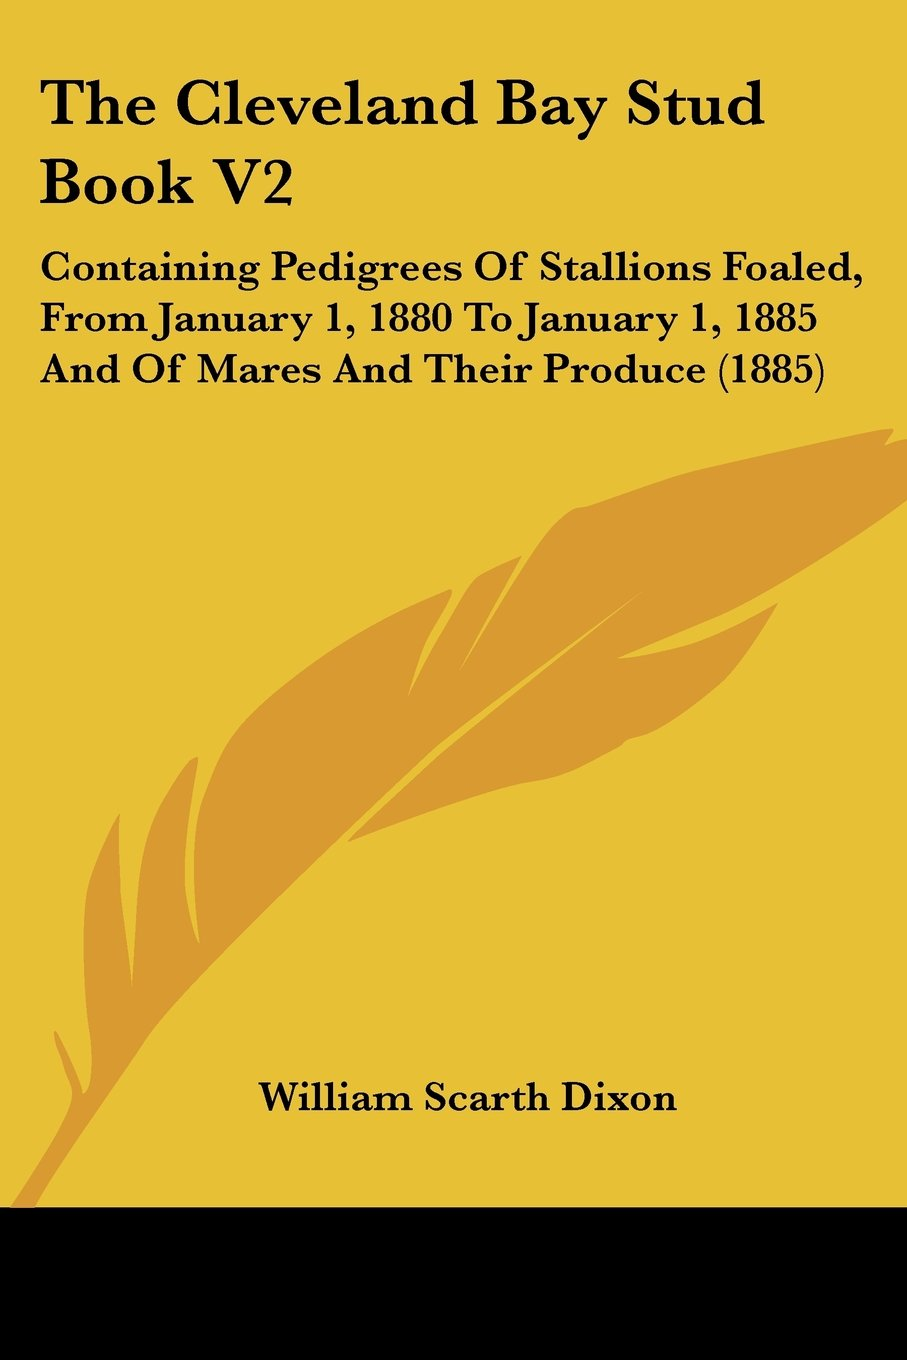 Download The Cleveland Bay Stud Book V2: Containing Pedigrees Of Stallions Foaled, From January 1, 1880 To January 1, 1885 And Of Mares And Their Produce (1885) PDF